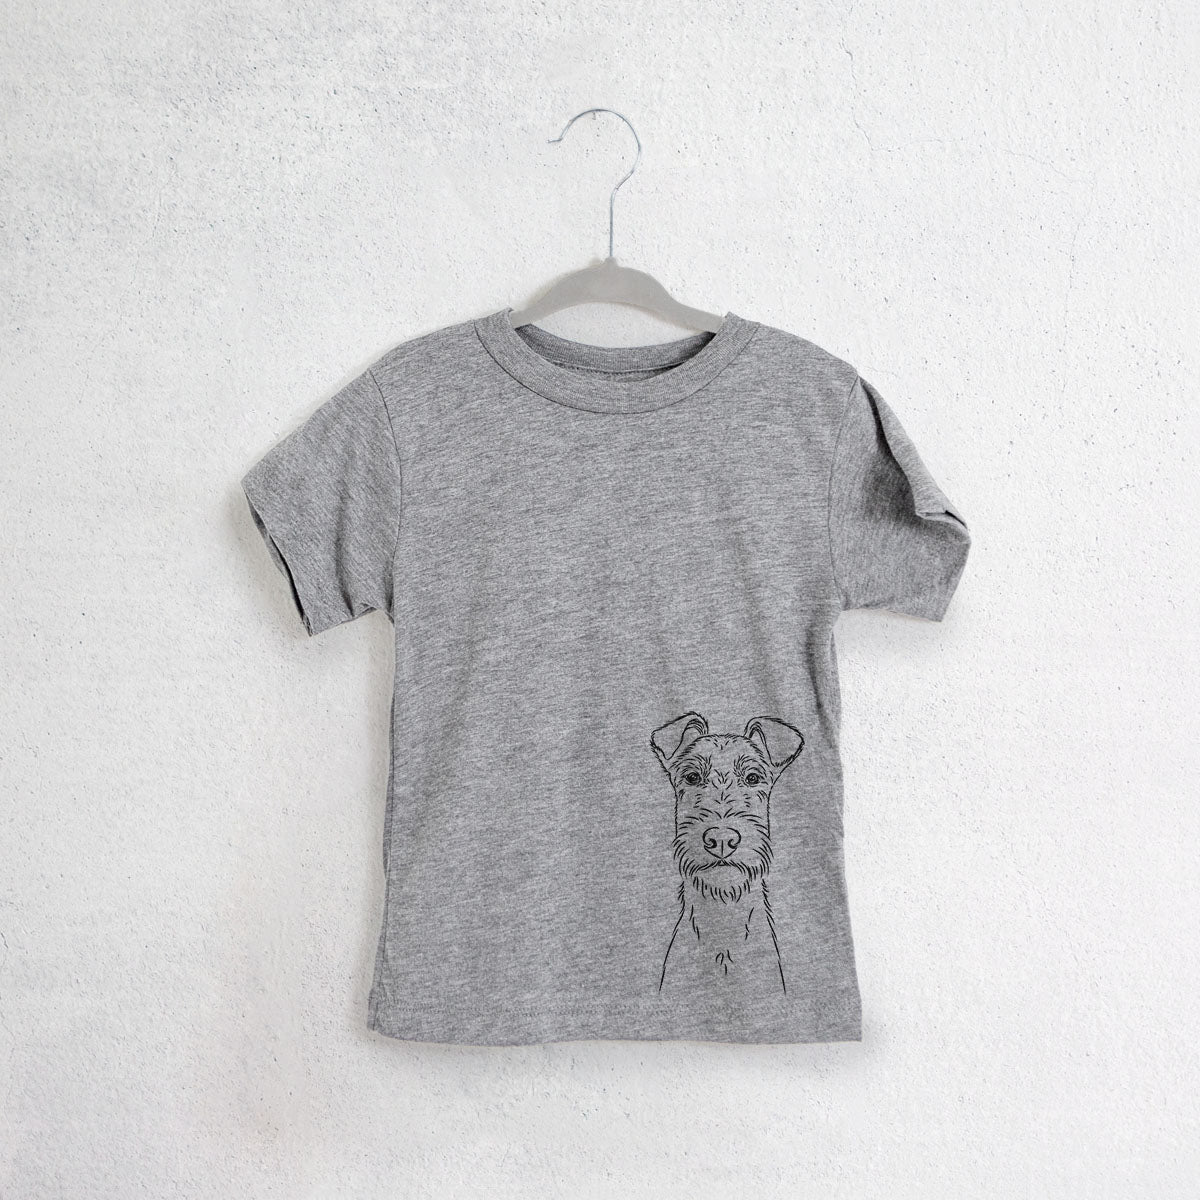 Connor the Irish Terrier - Kids/Youth/Toddler Shirt